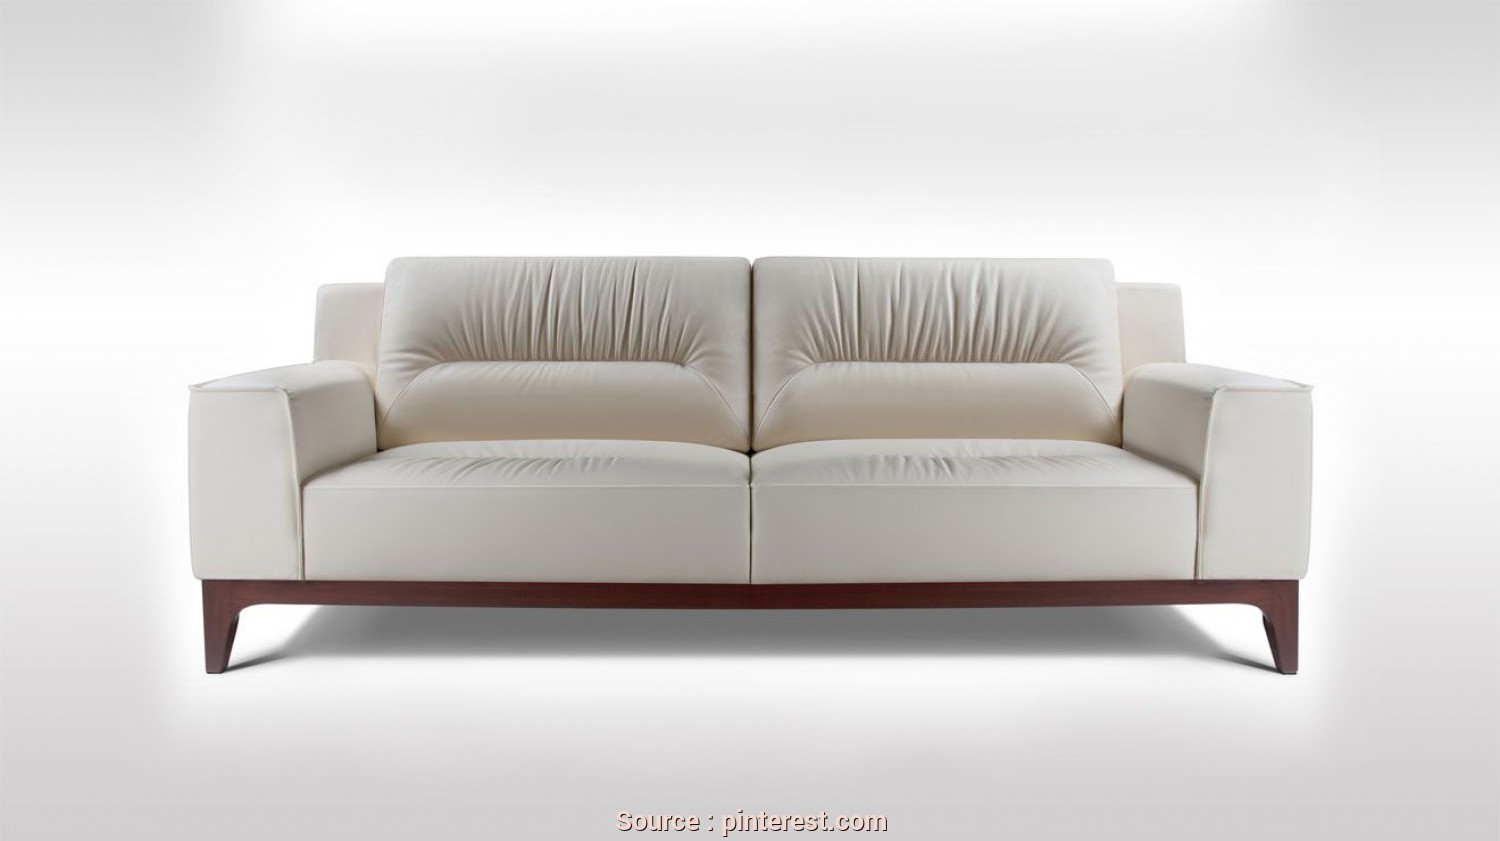 Sb Salotti Modello Gloria, Amabile Image Result, Stanley Sofa Catalogue,, F A, Pinterest